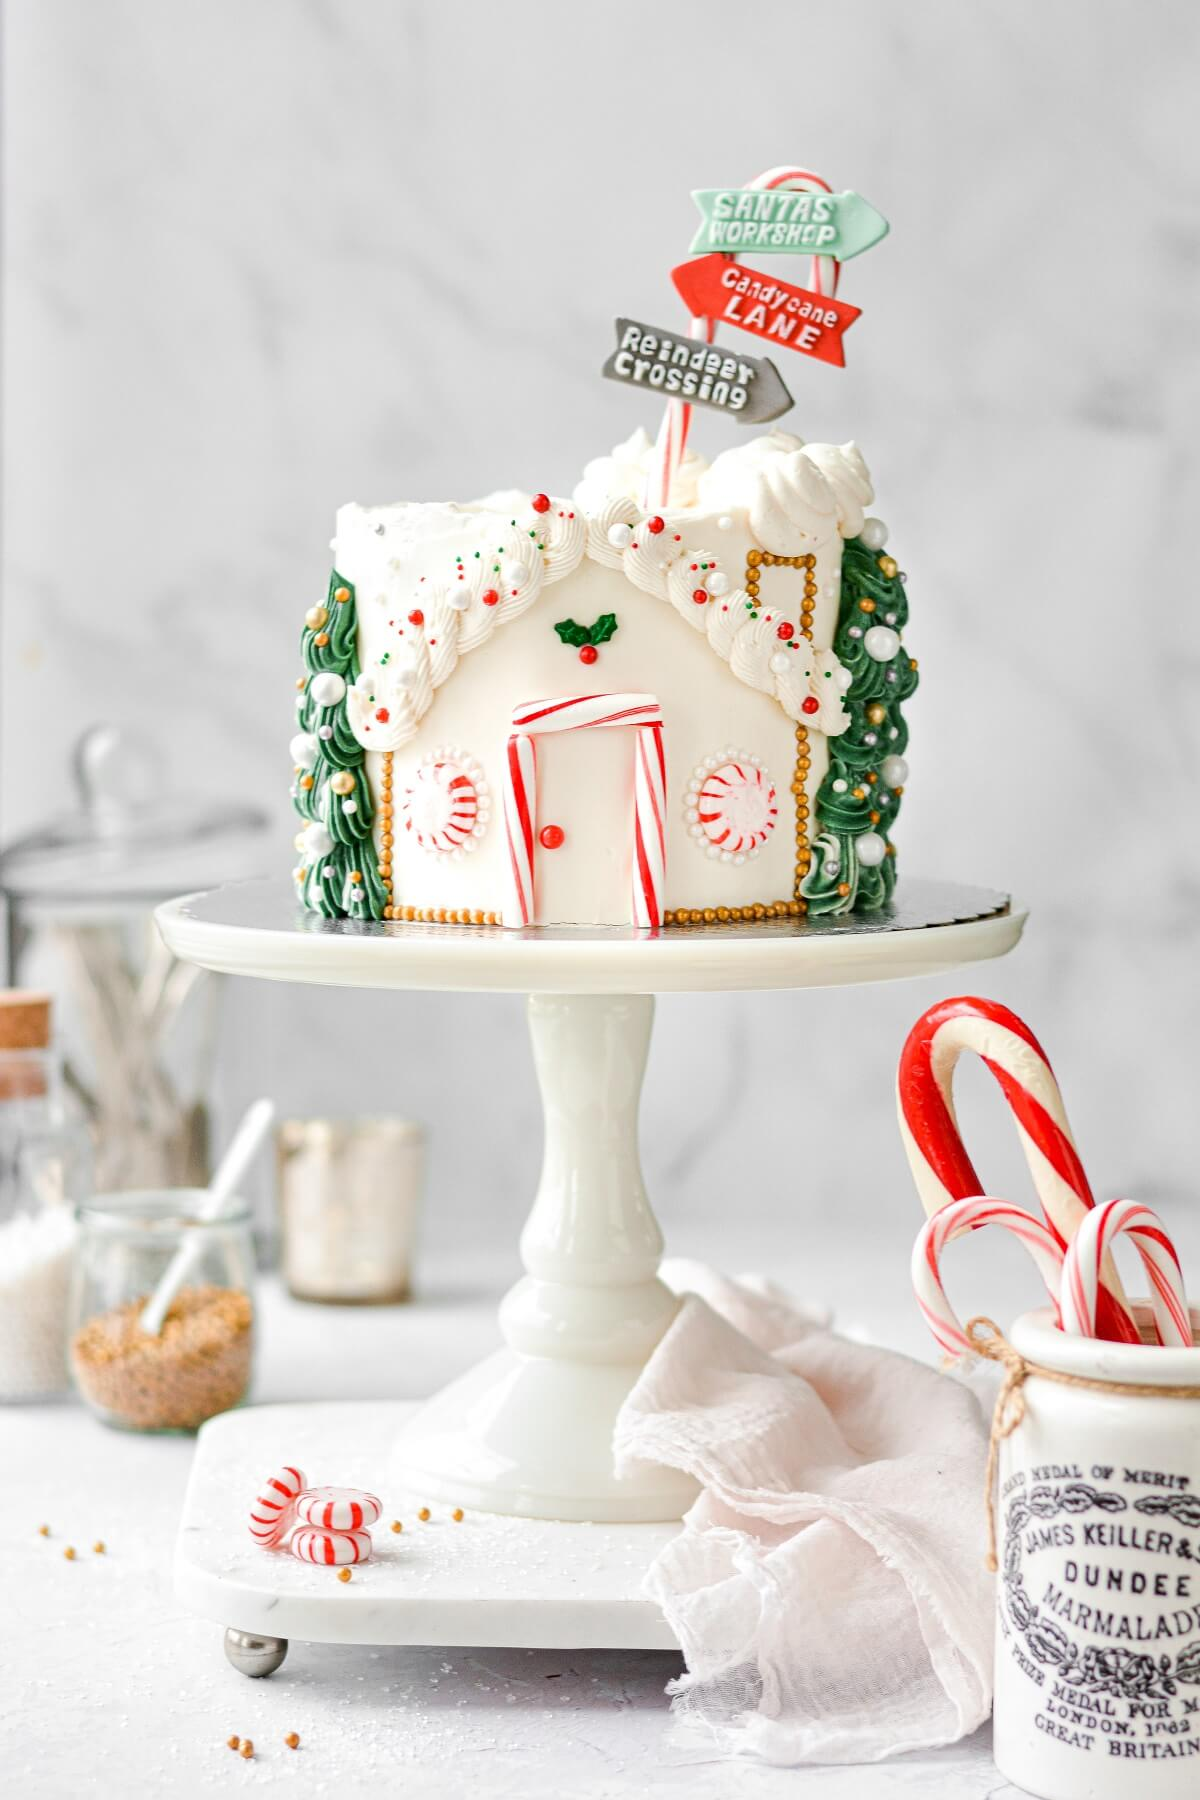 A Santa's Workshop Cake, with a candy door, buttercream trees, and a candy cane sign.